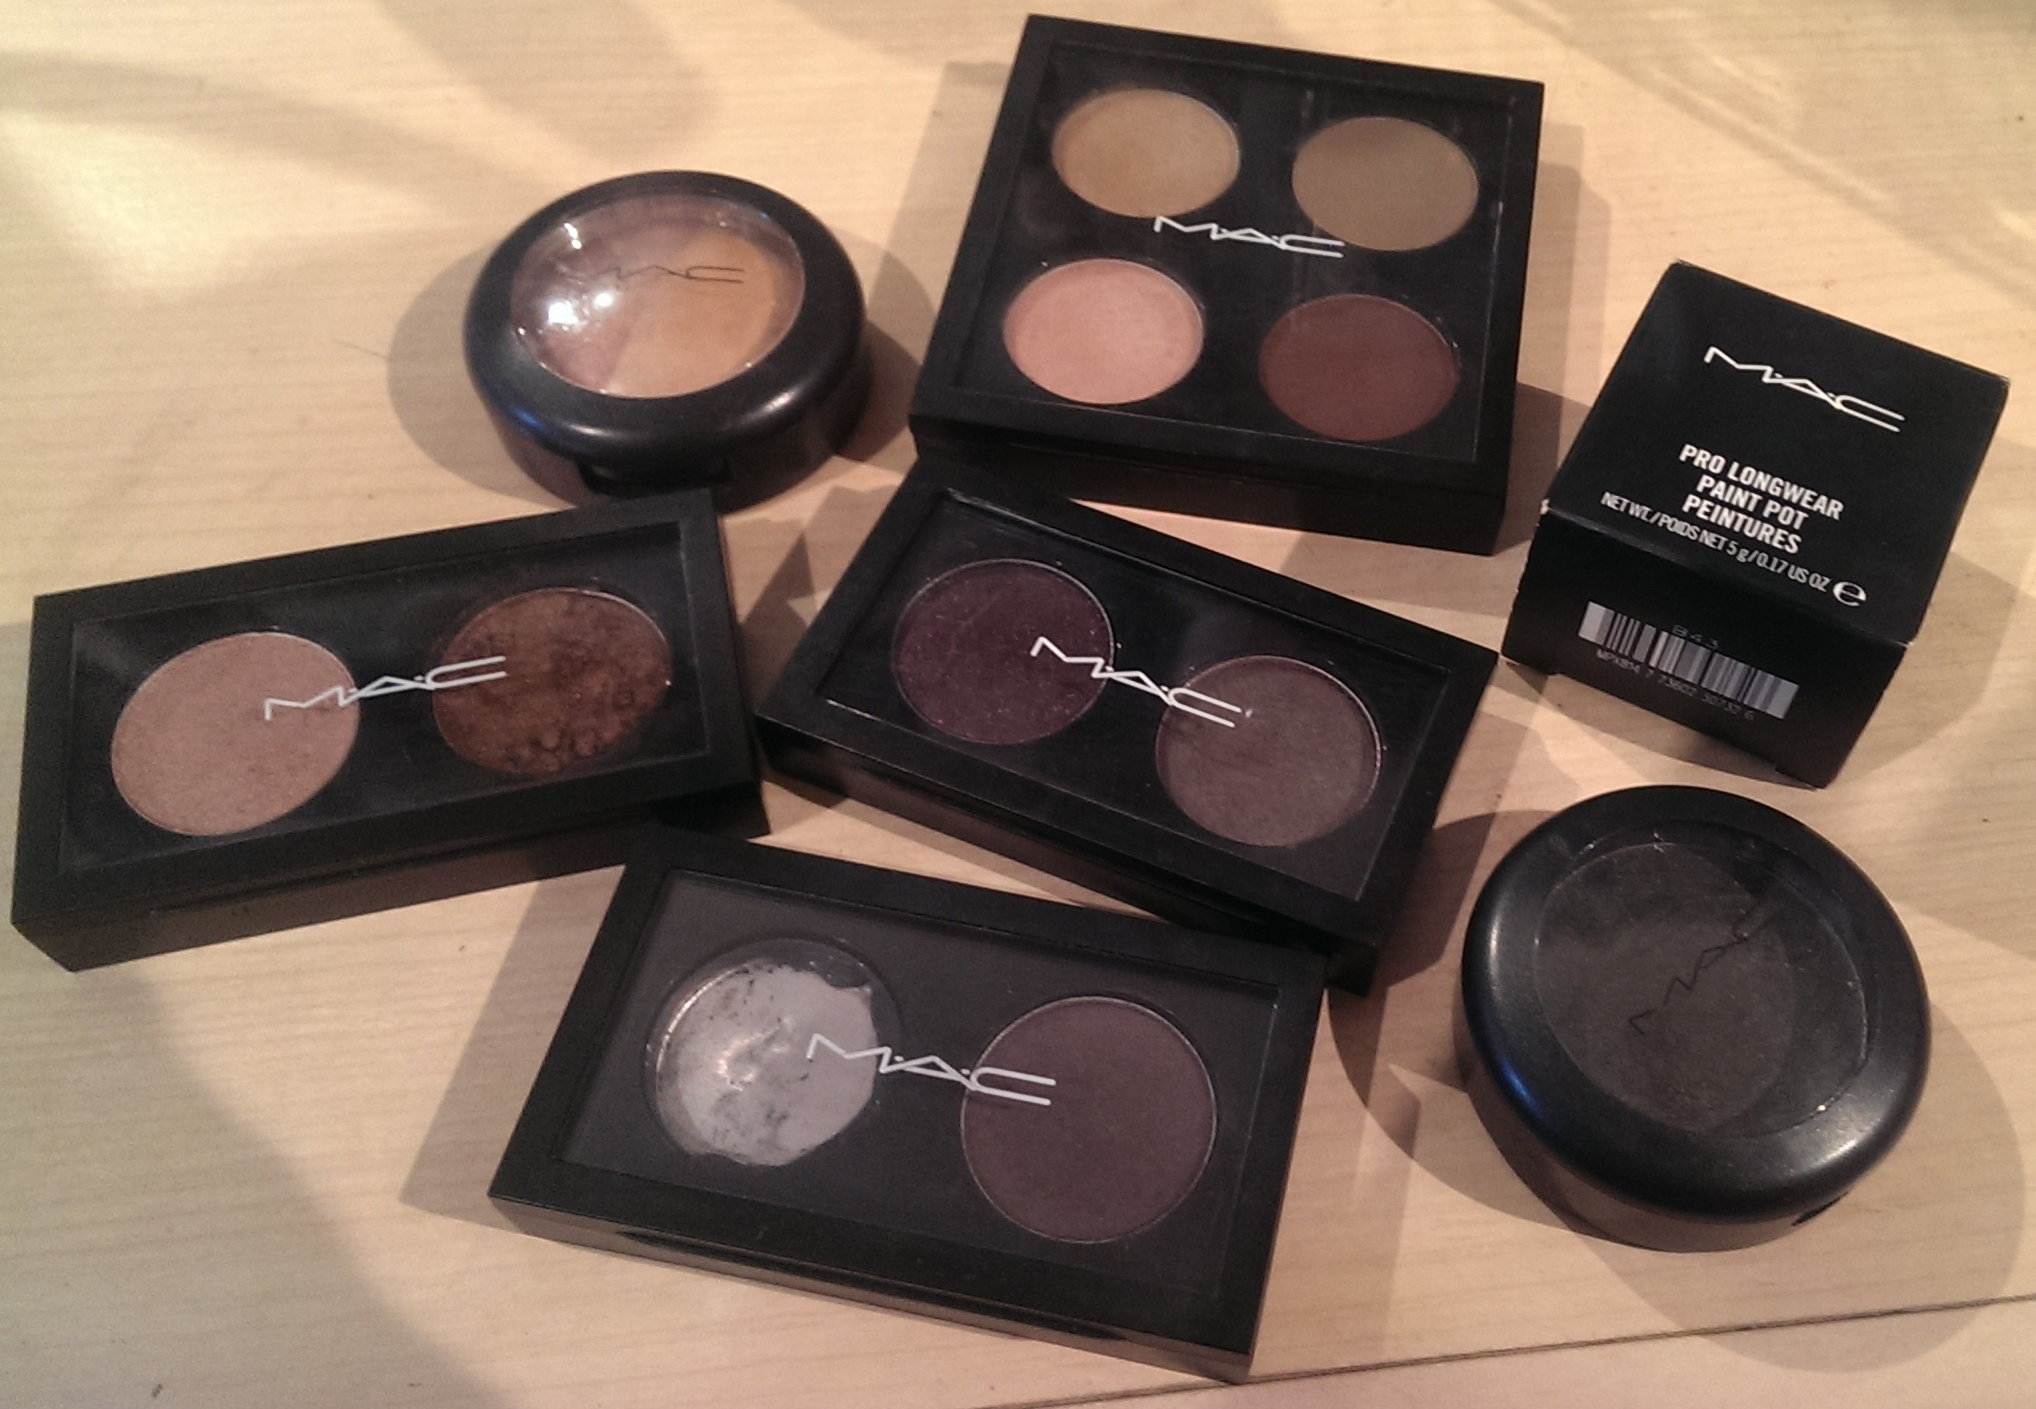 New brands in the makeup industry face behemoths like mac cosmetics and retailers like sephora the barrier is that